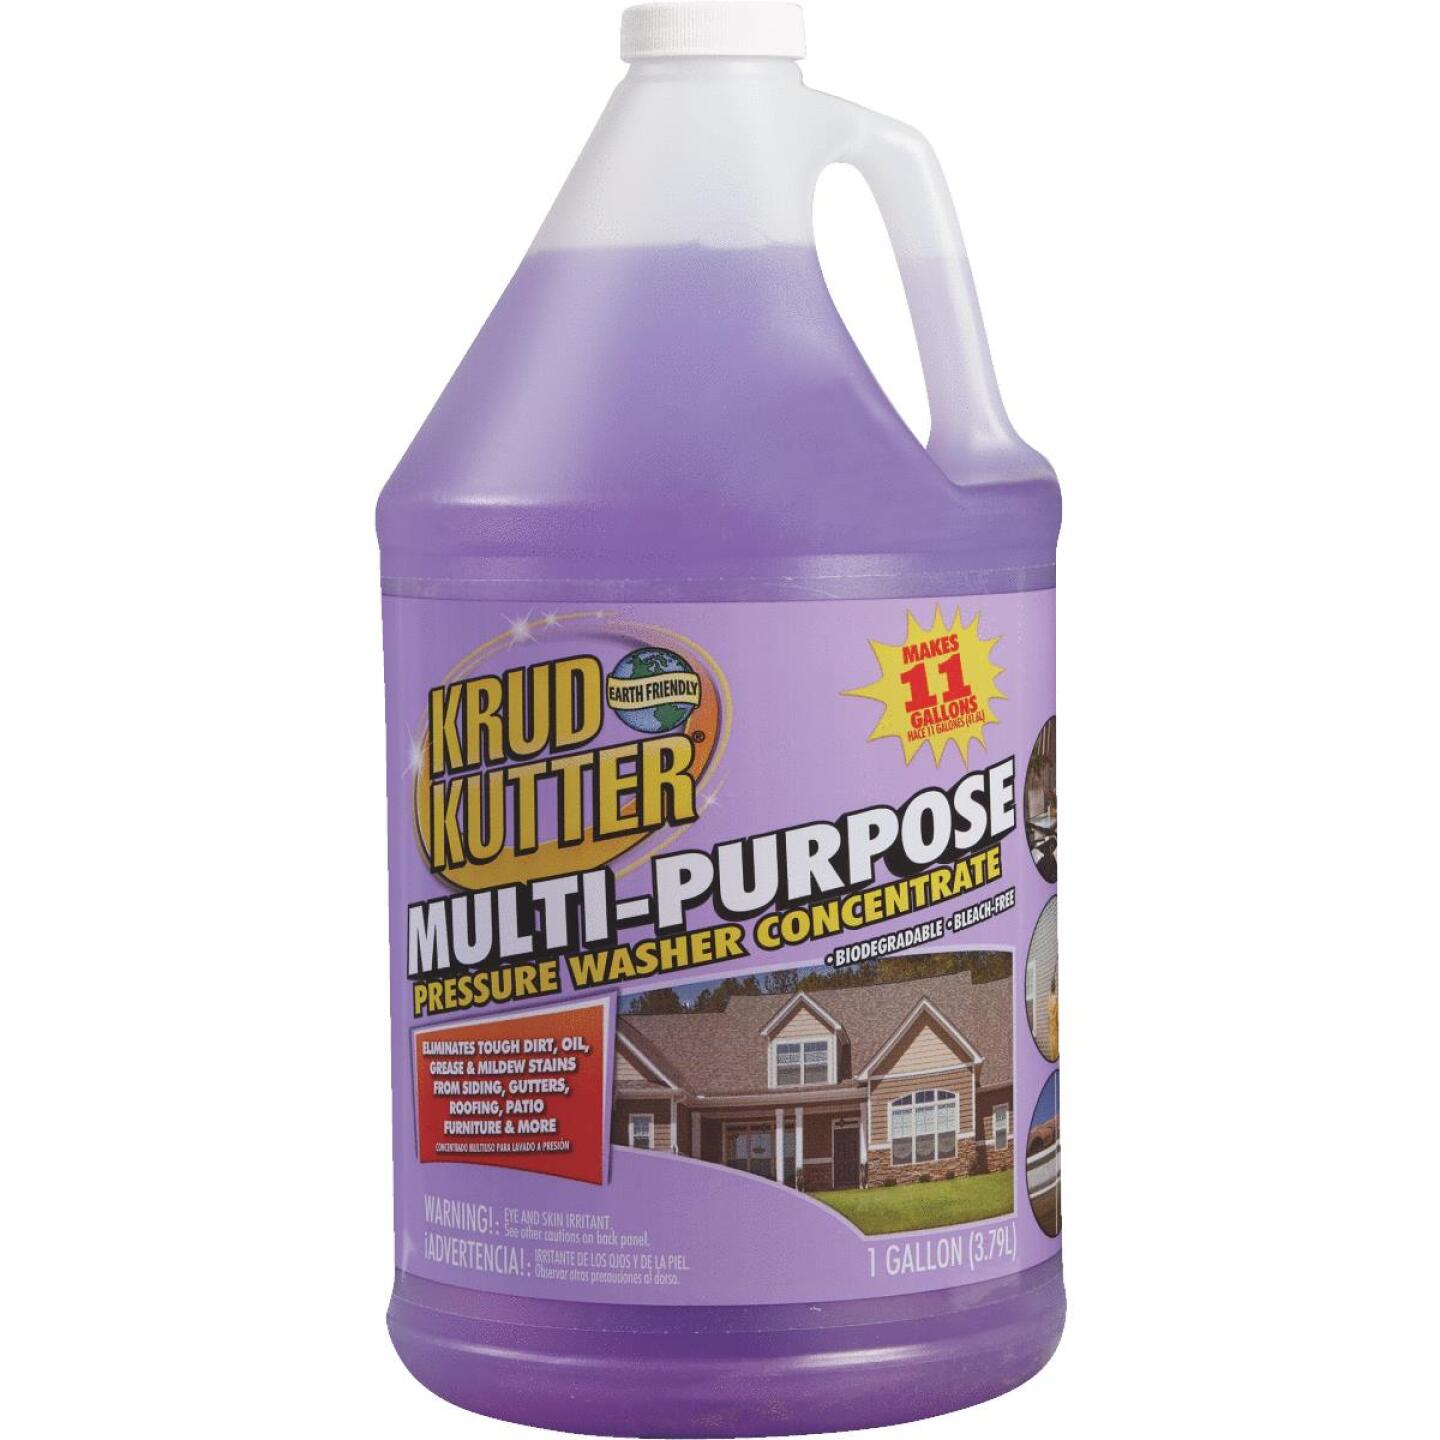 Krud Kutter Multi-Purpose Pressure Washer Concentrate Cleaner Image 1